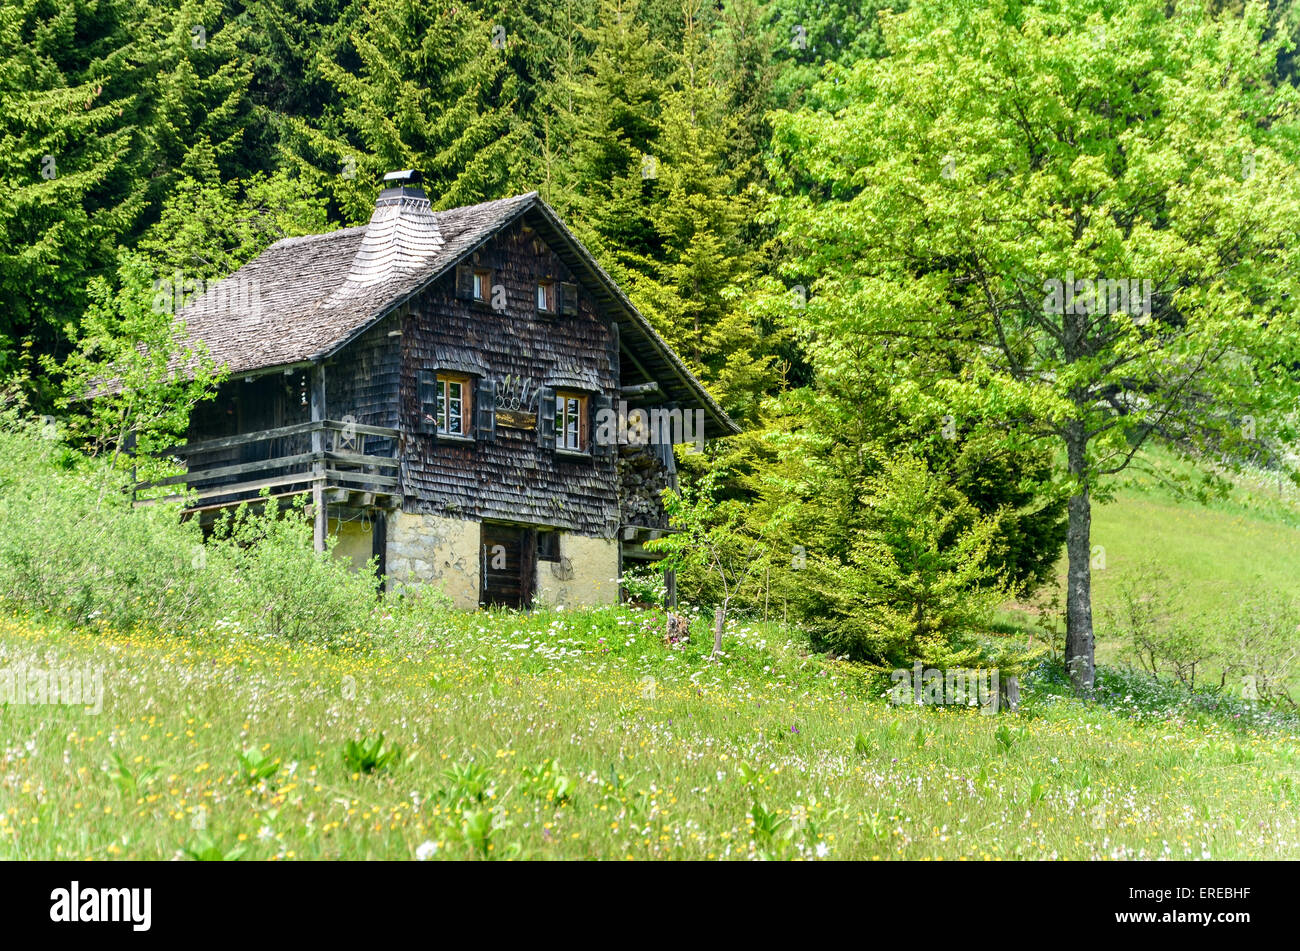 Chalet house in the mountains of Switzerland - Stock Image